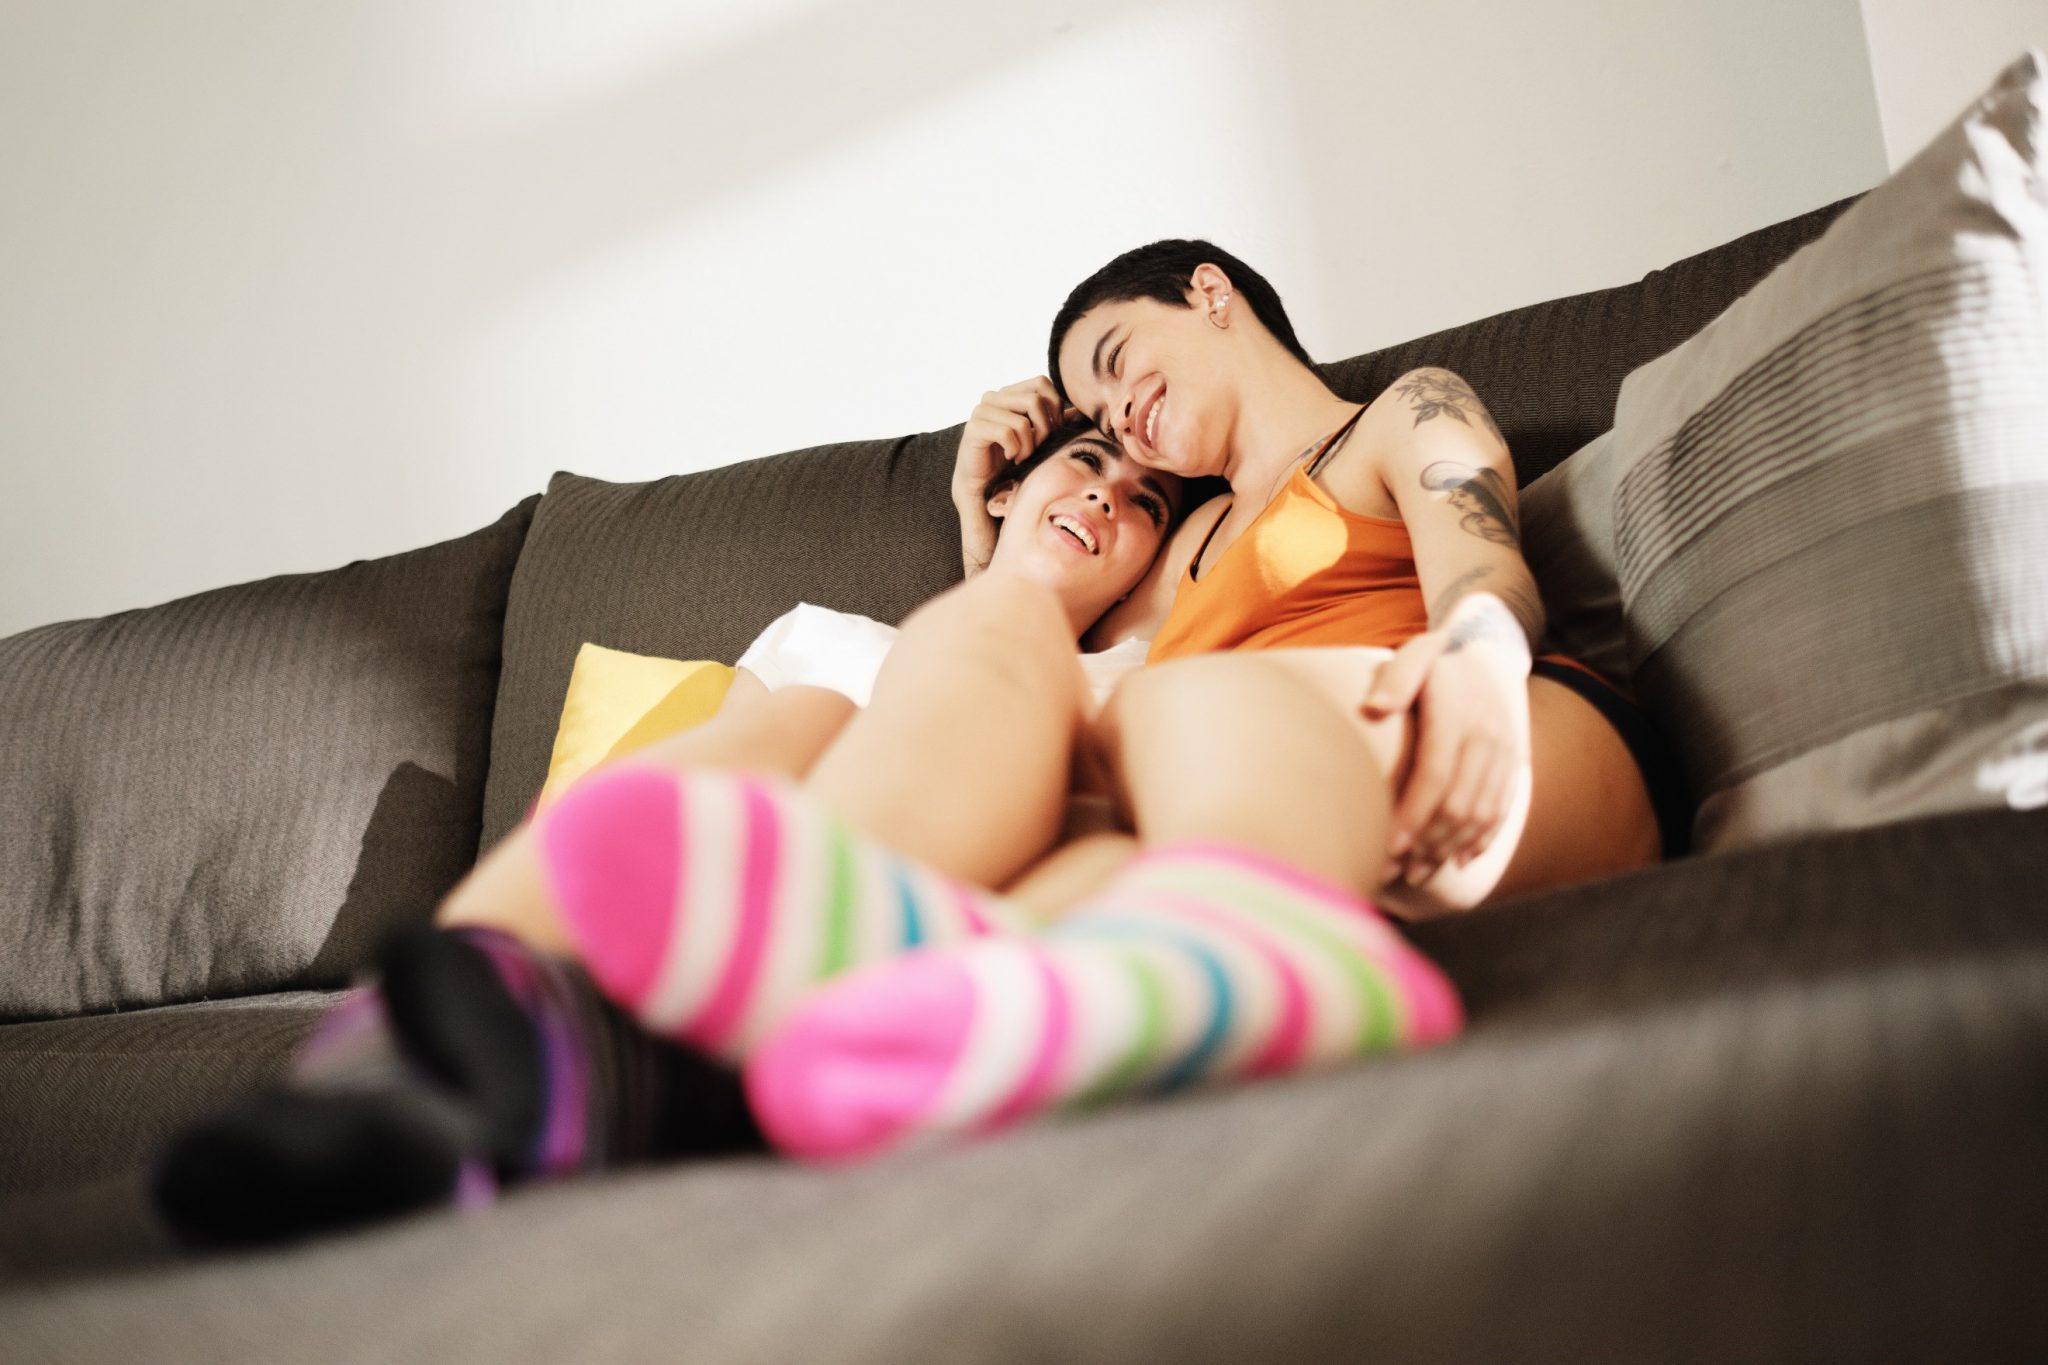 Lesbian Couple Kissing On Sofa In Living Room